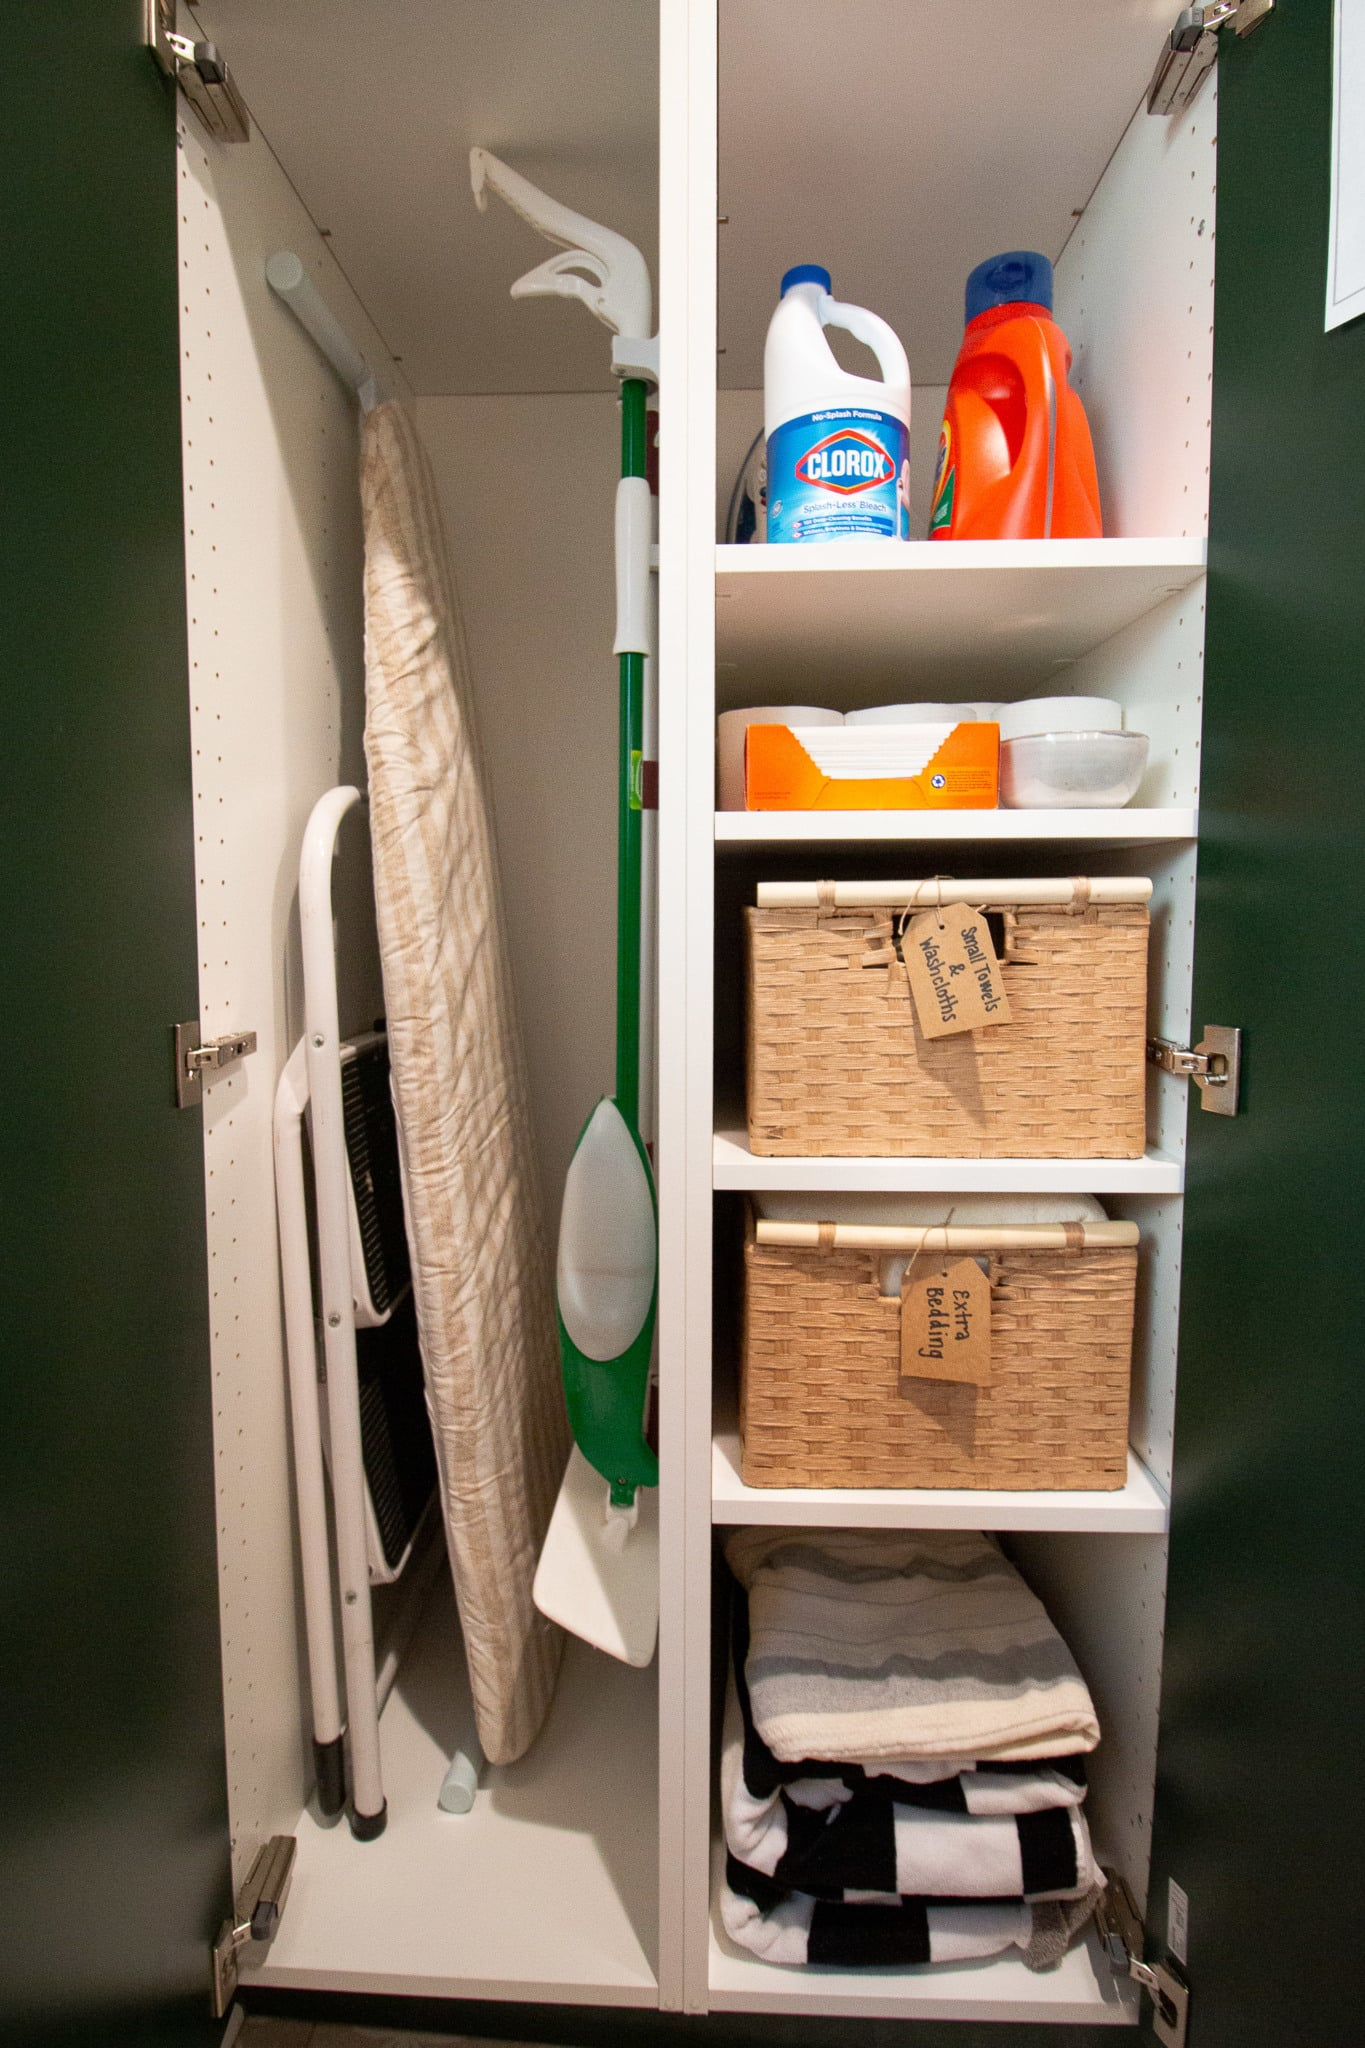 Adjustable shelves for laundry room organization